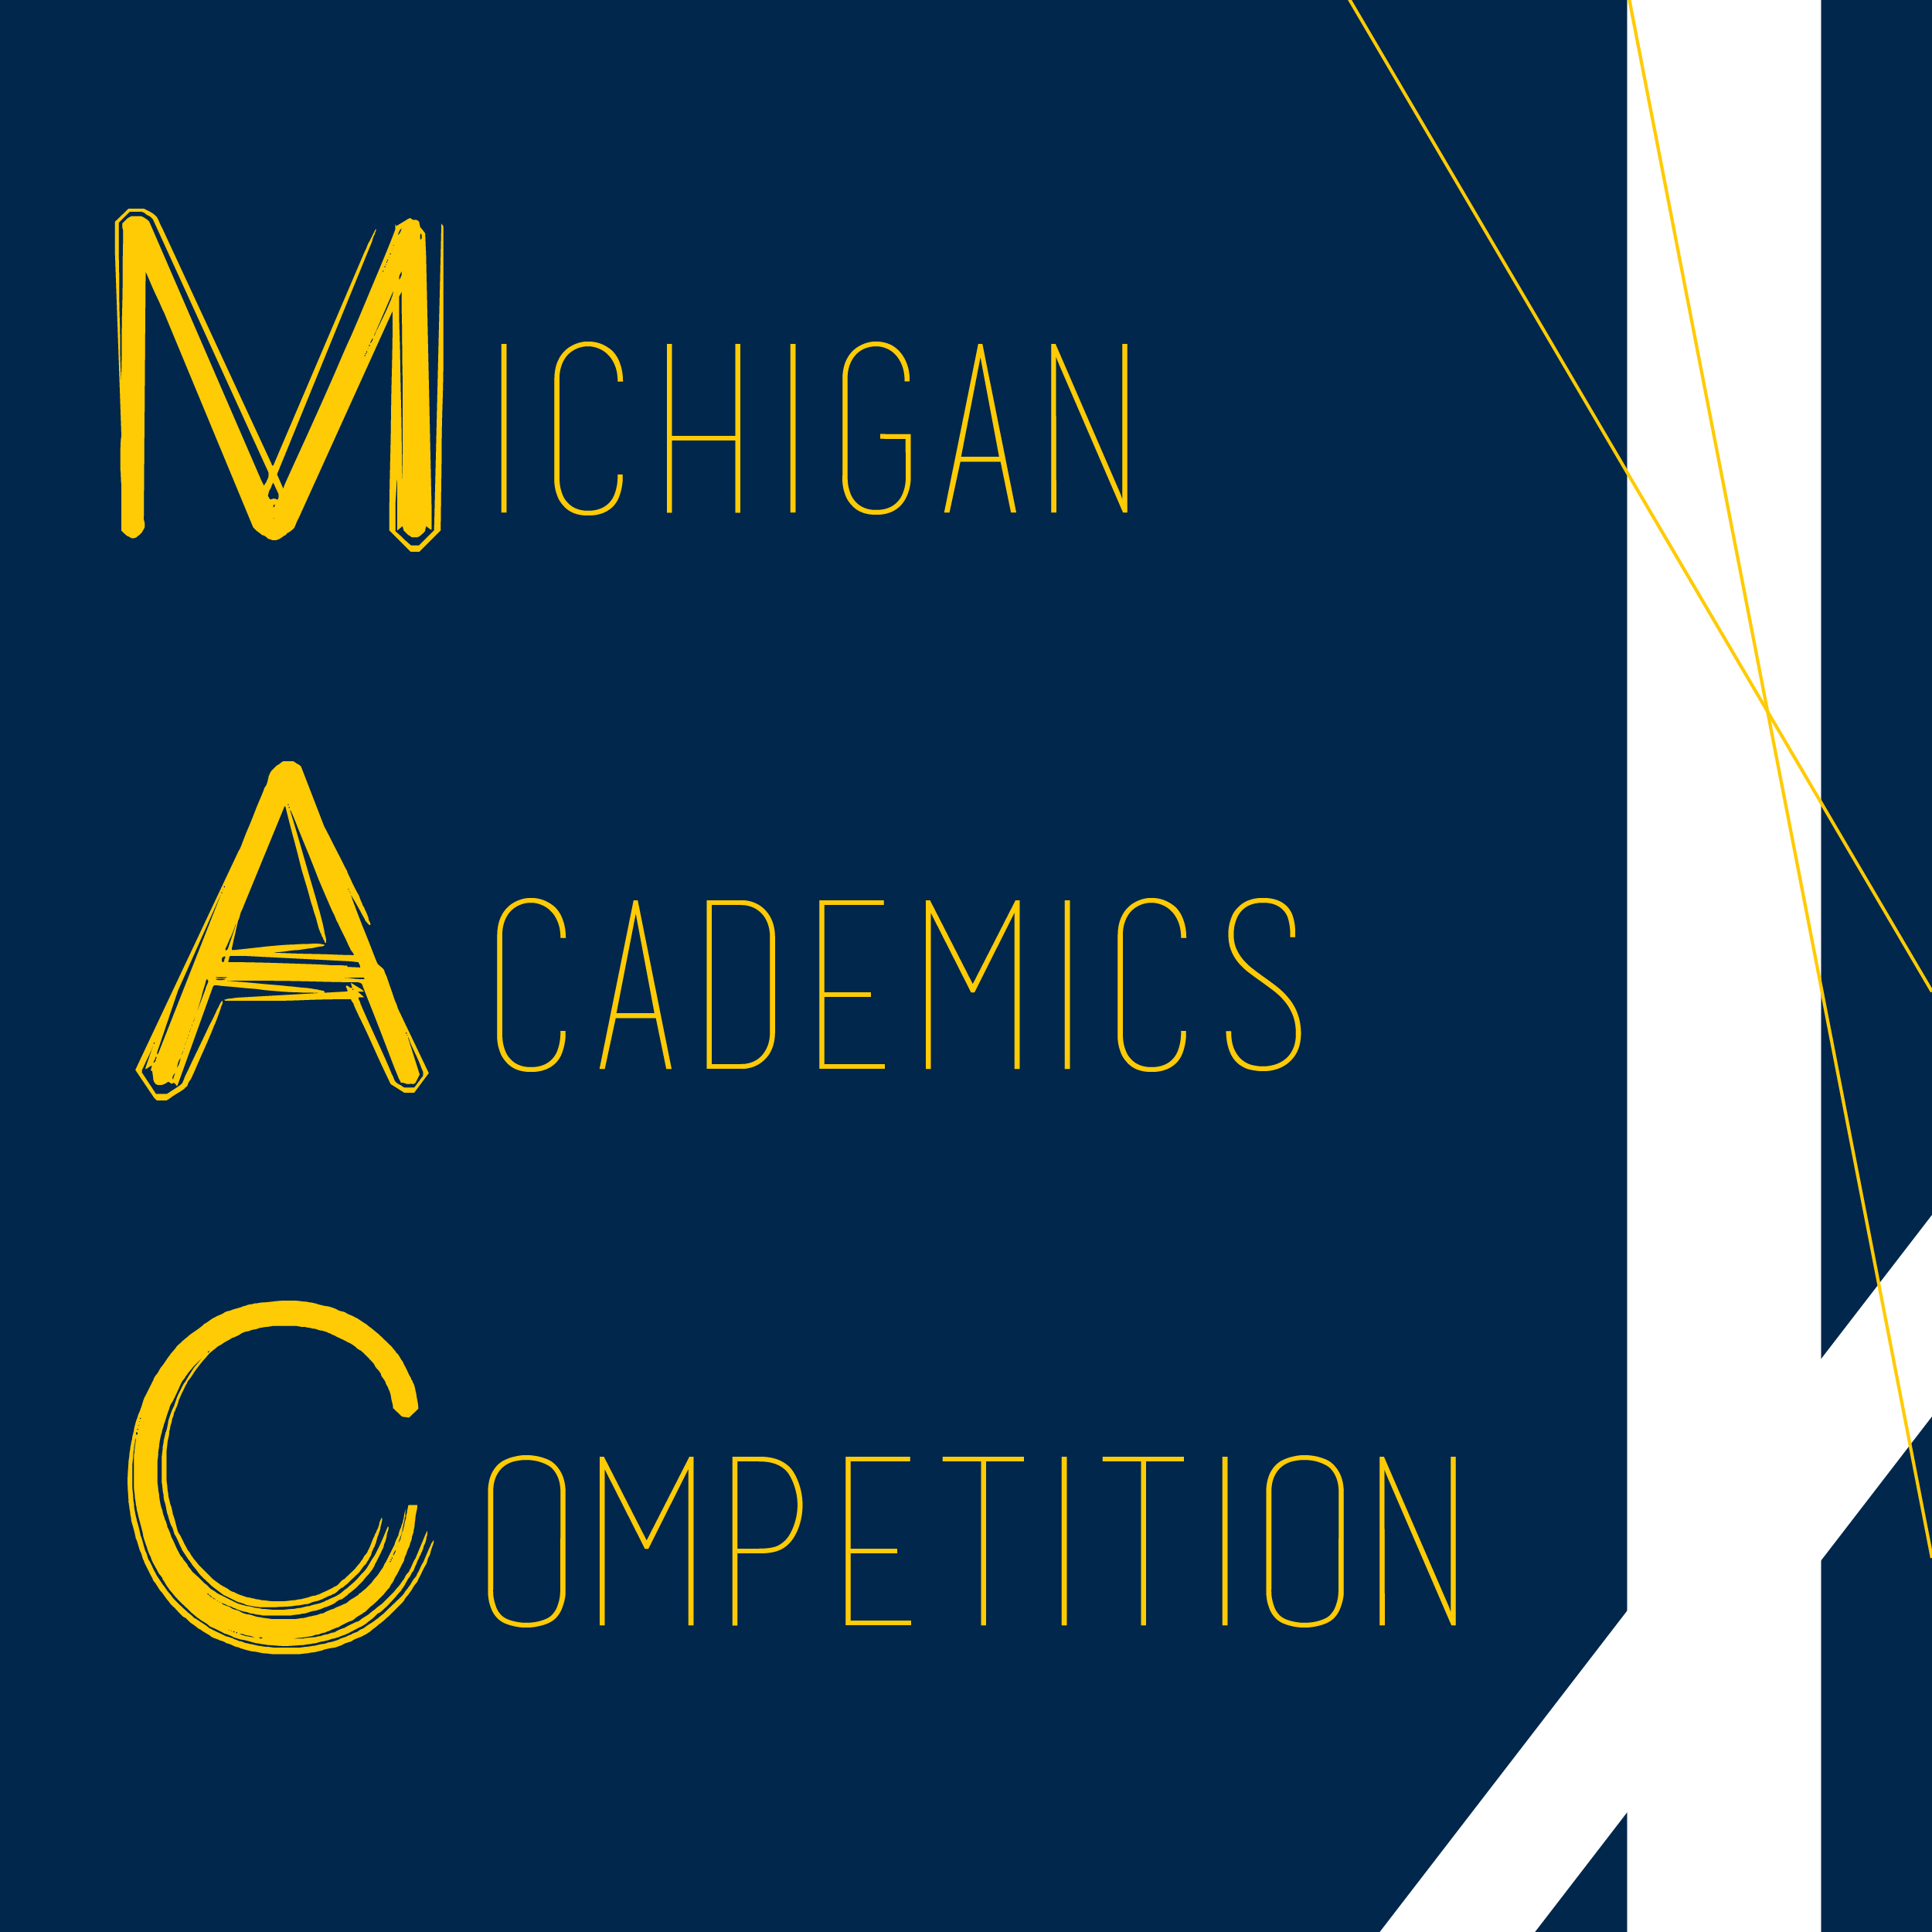 Michigan Academics Competition (MAC)   Welcome to the website for Michigan Academic Competitions, or Quiz Bowl! Our organization is devoted to academic and pop-culture trivia and competition.